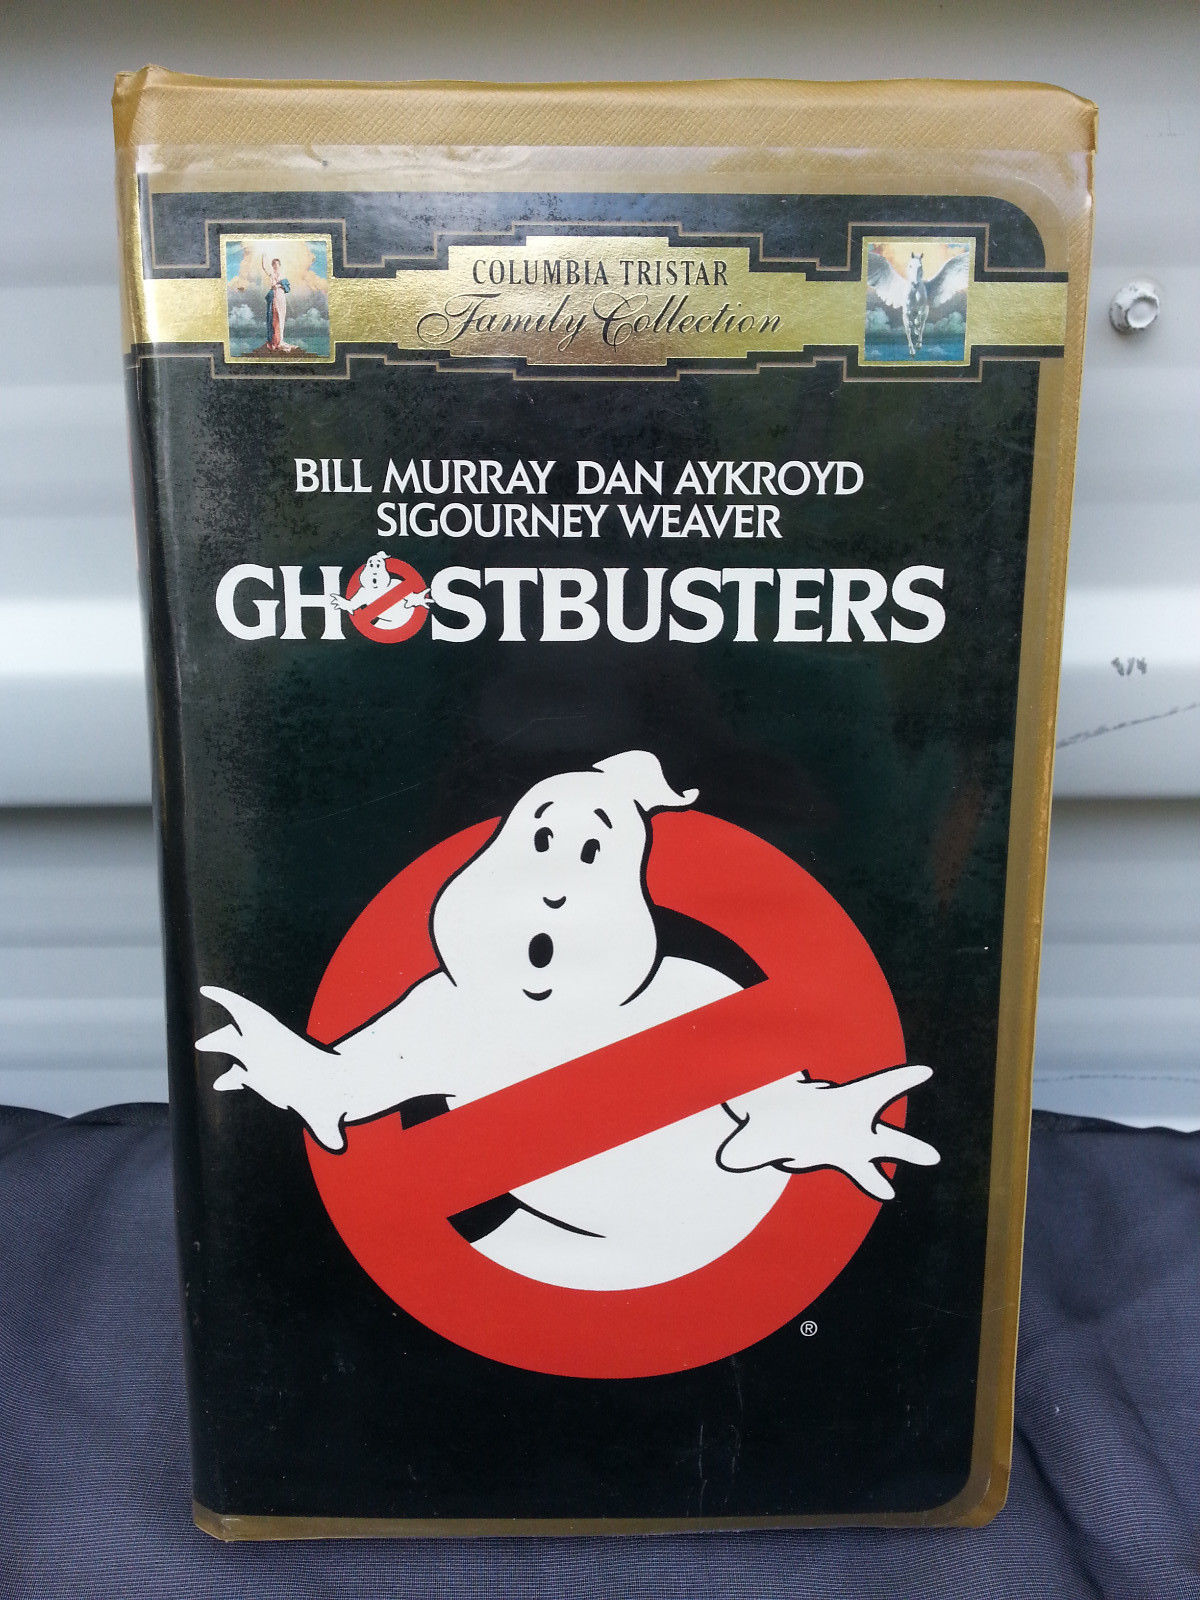 opening to ghostbusters 1999 vhs (columbia tristar & warner home